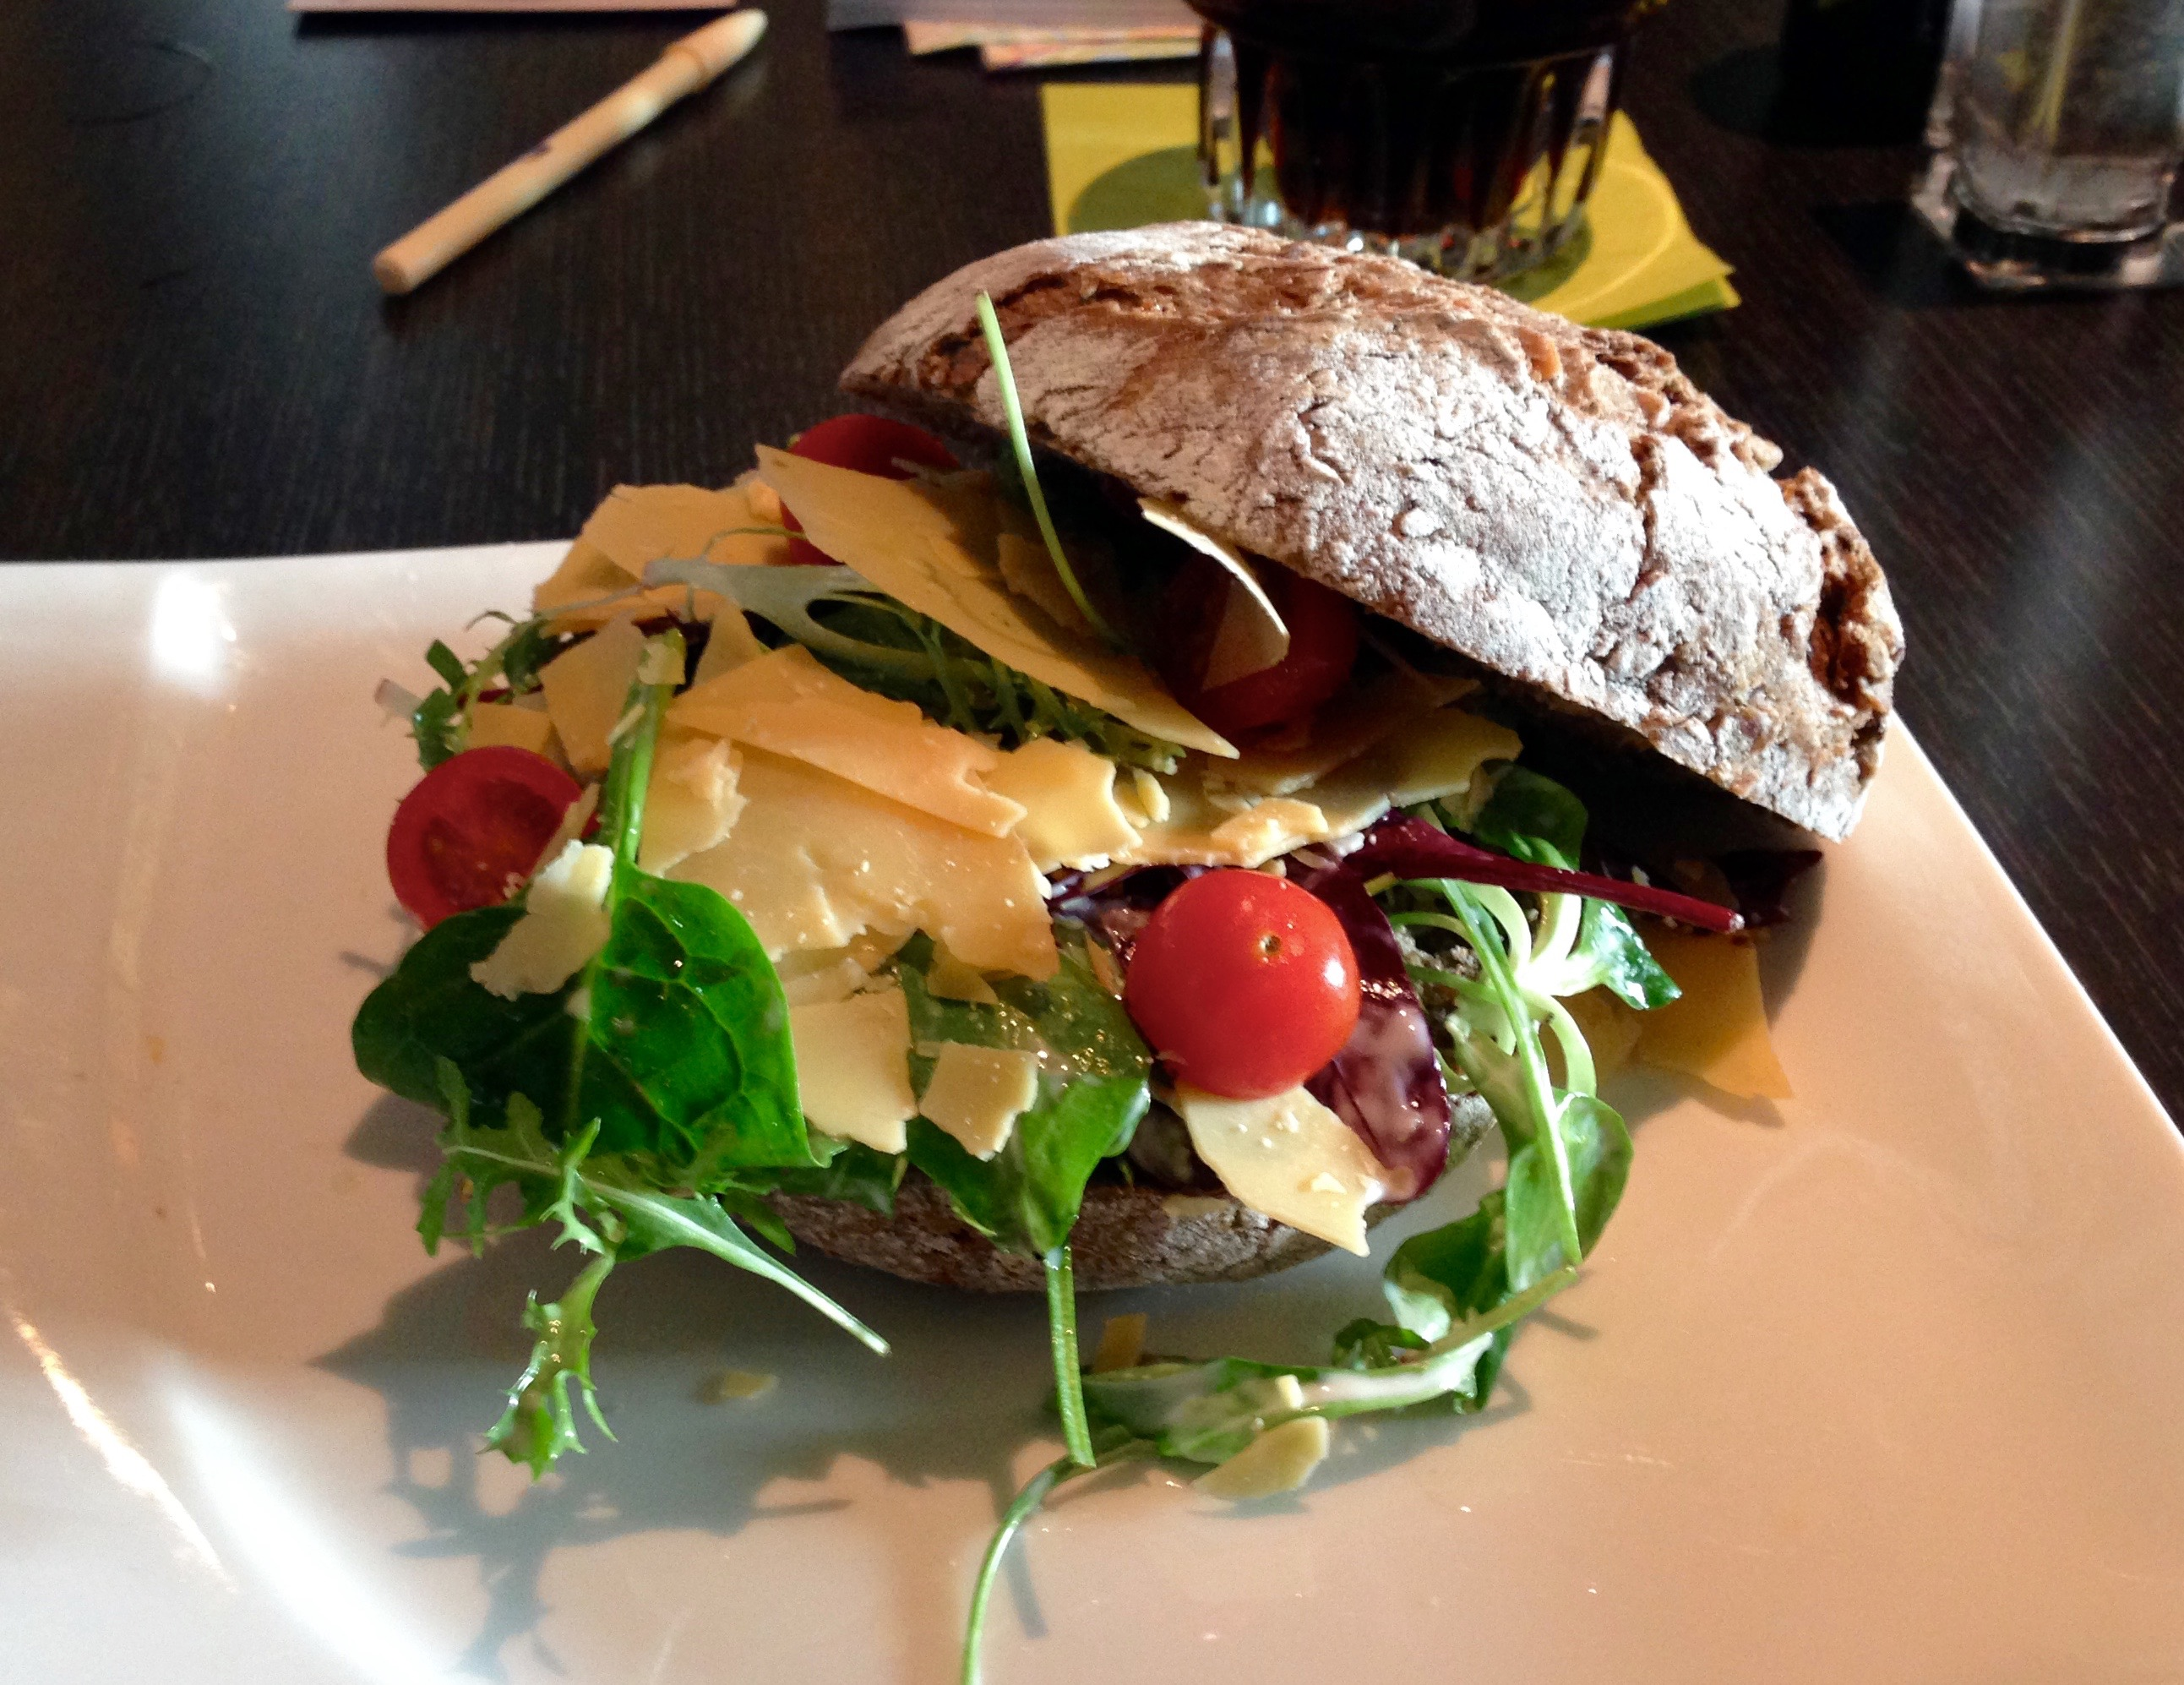 Doubletree by Hilton Amsterdam Centraal Station Lobby Bar Meal